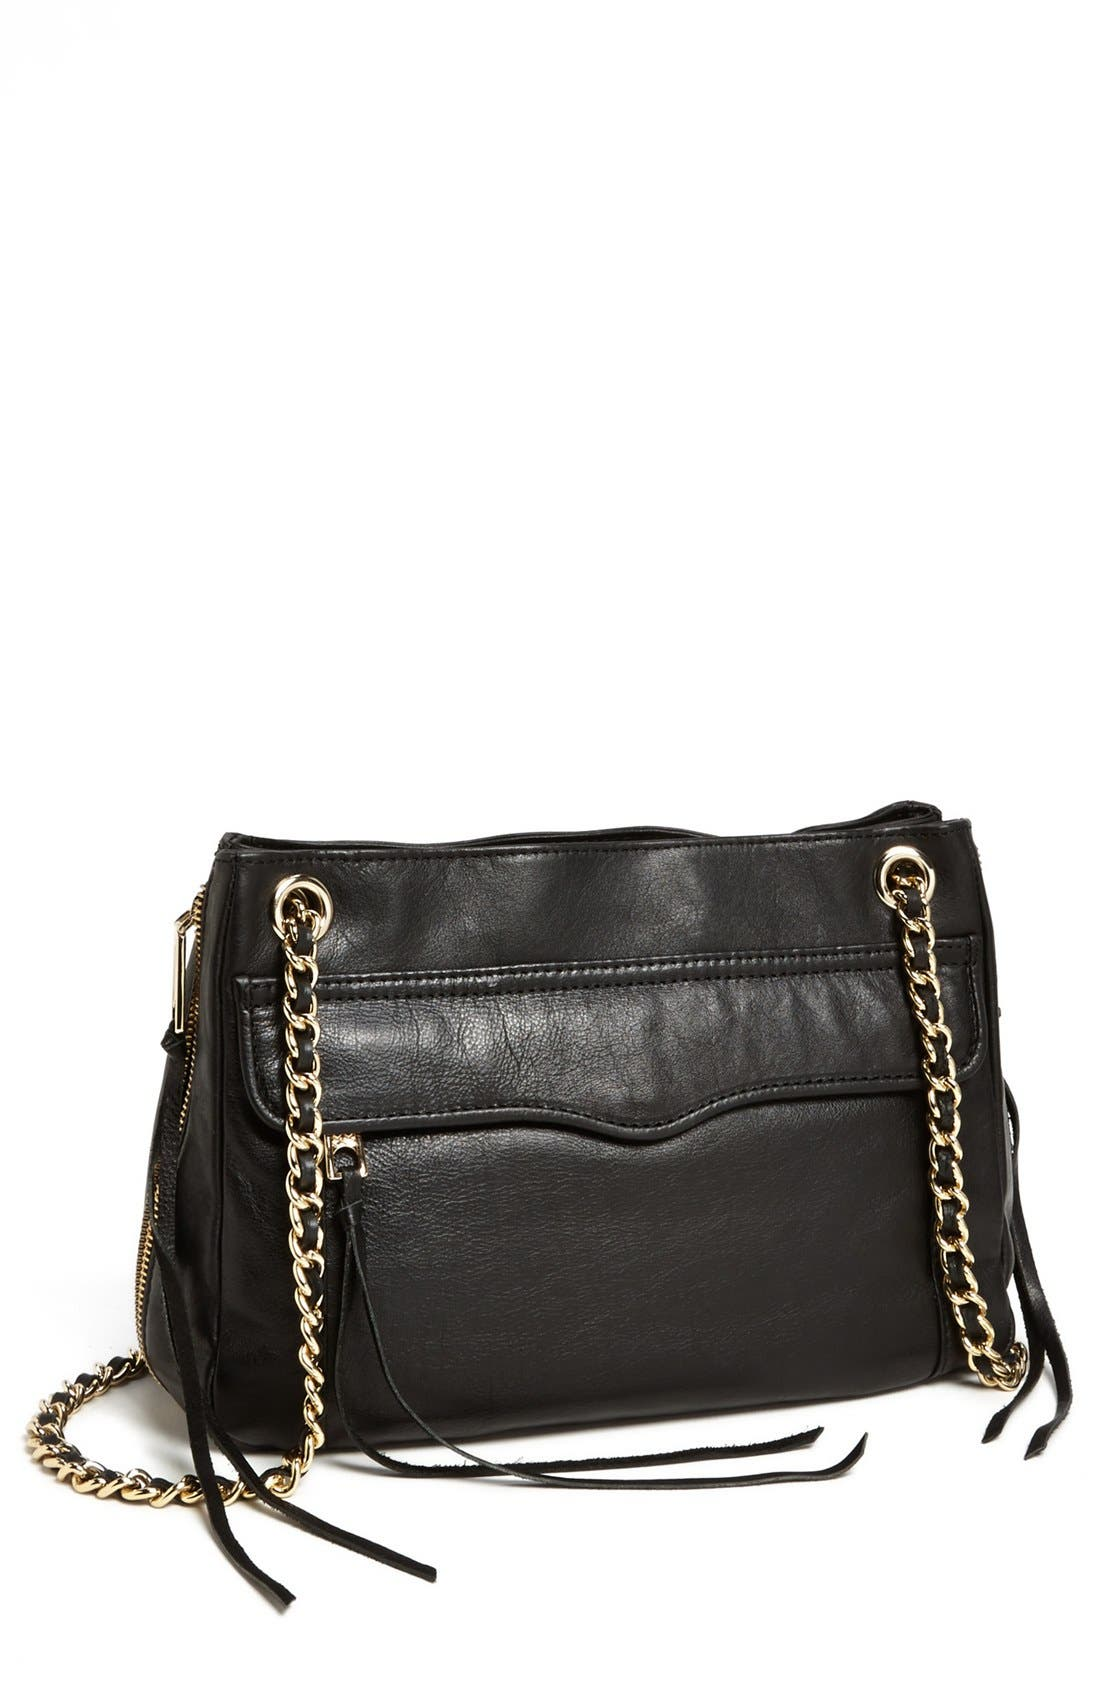 Main Image - Rebecca Minkoff 'Swing' Convertible Shoulder Bag